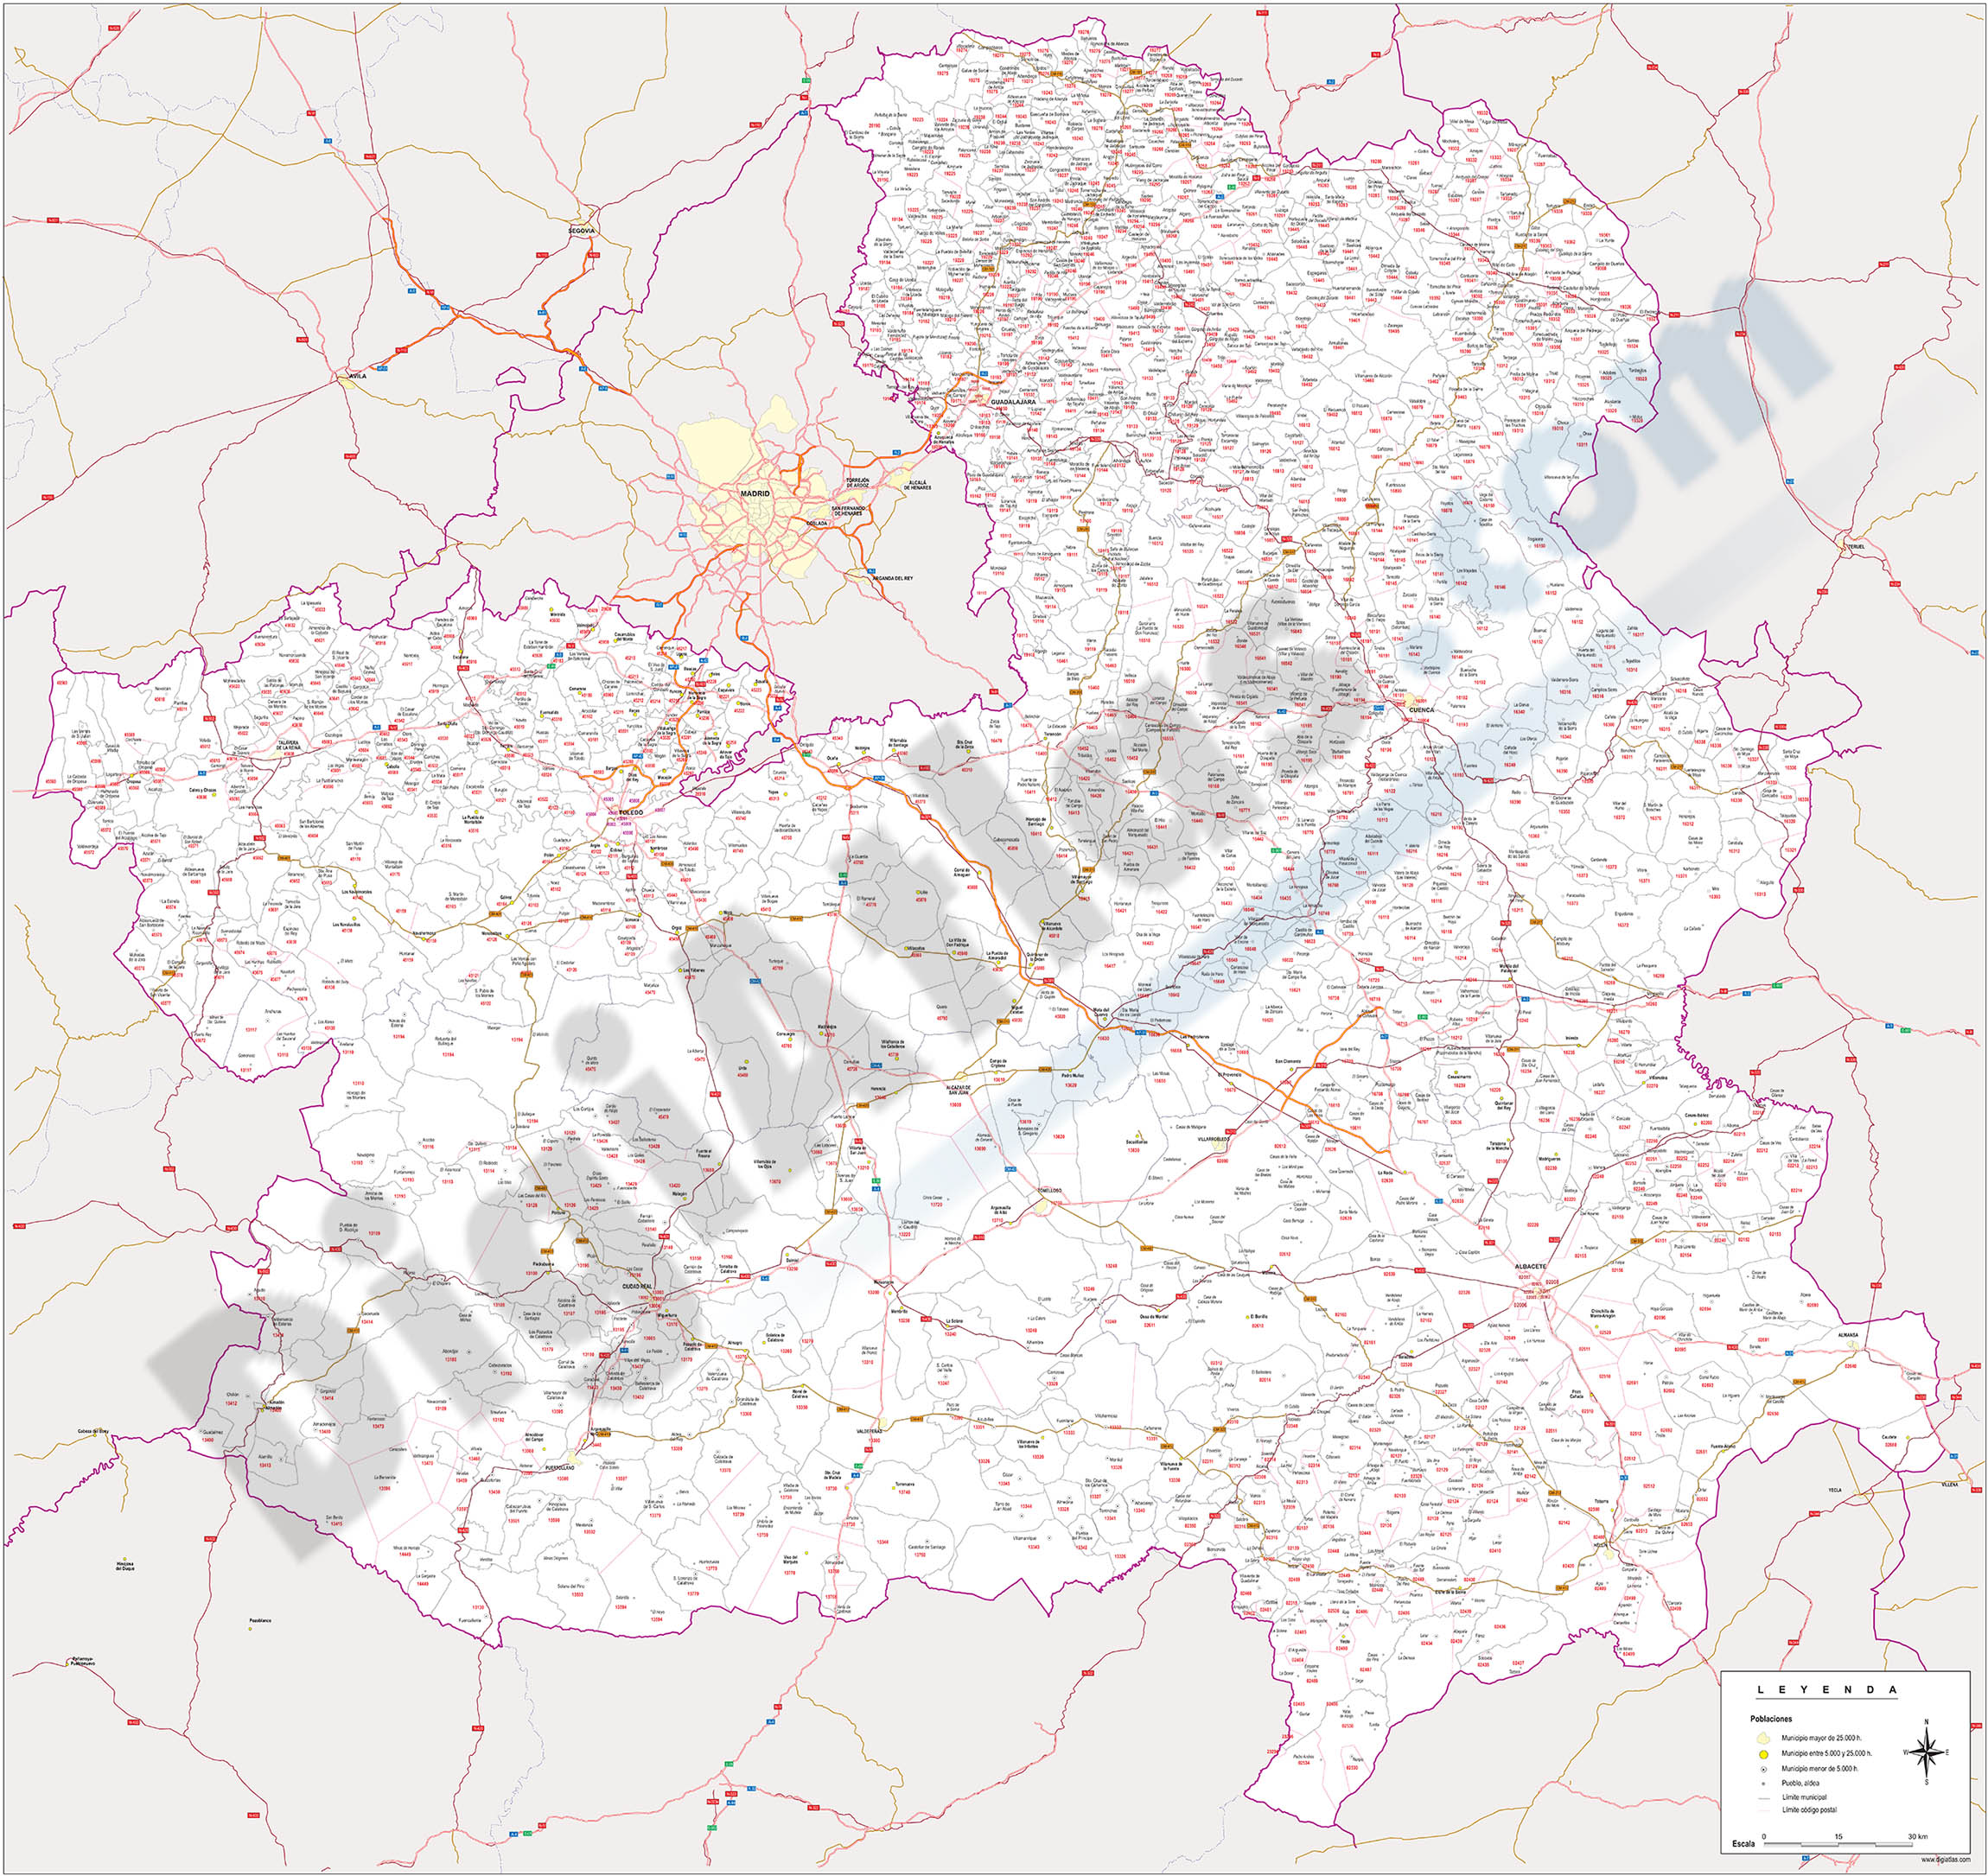 Castile-La Mancha - map of postal codes, municipalities and major roads